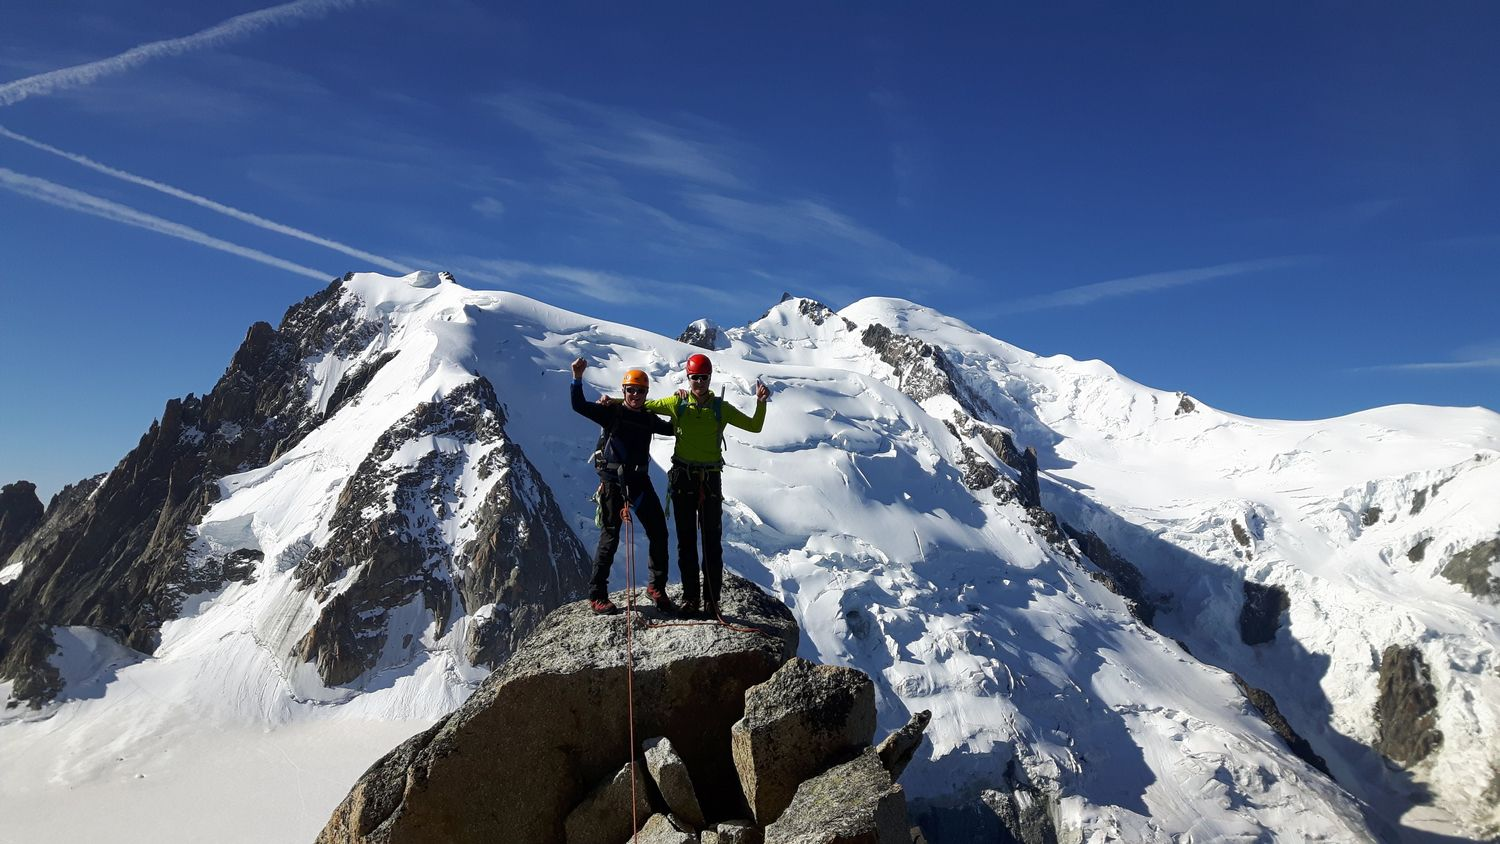 On the summit of the Cosmiques Arete with Mont Blanc behind